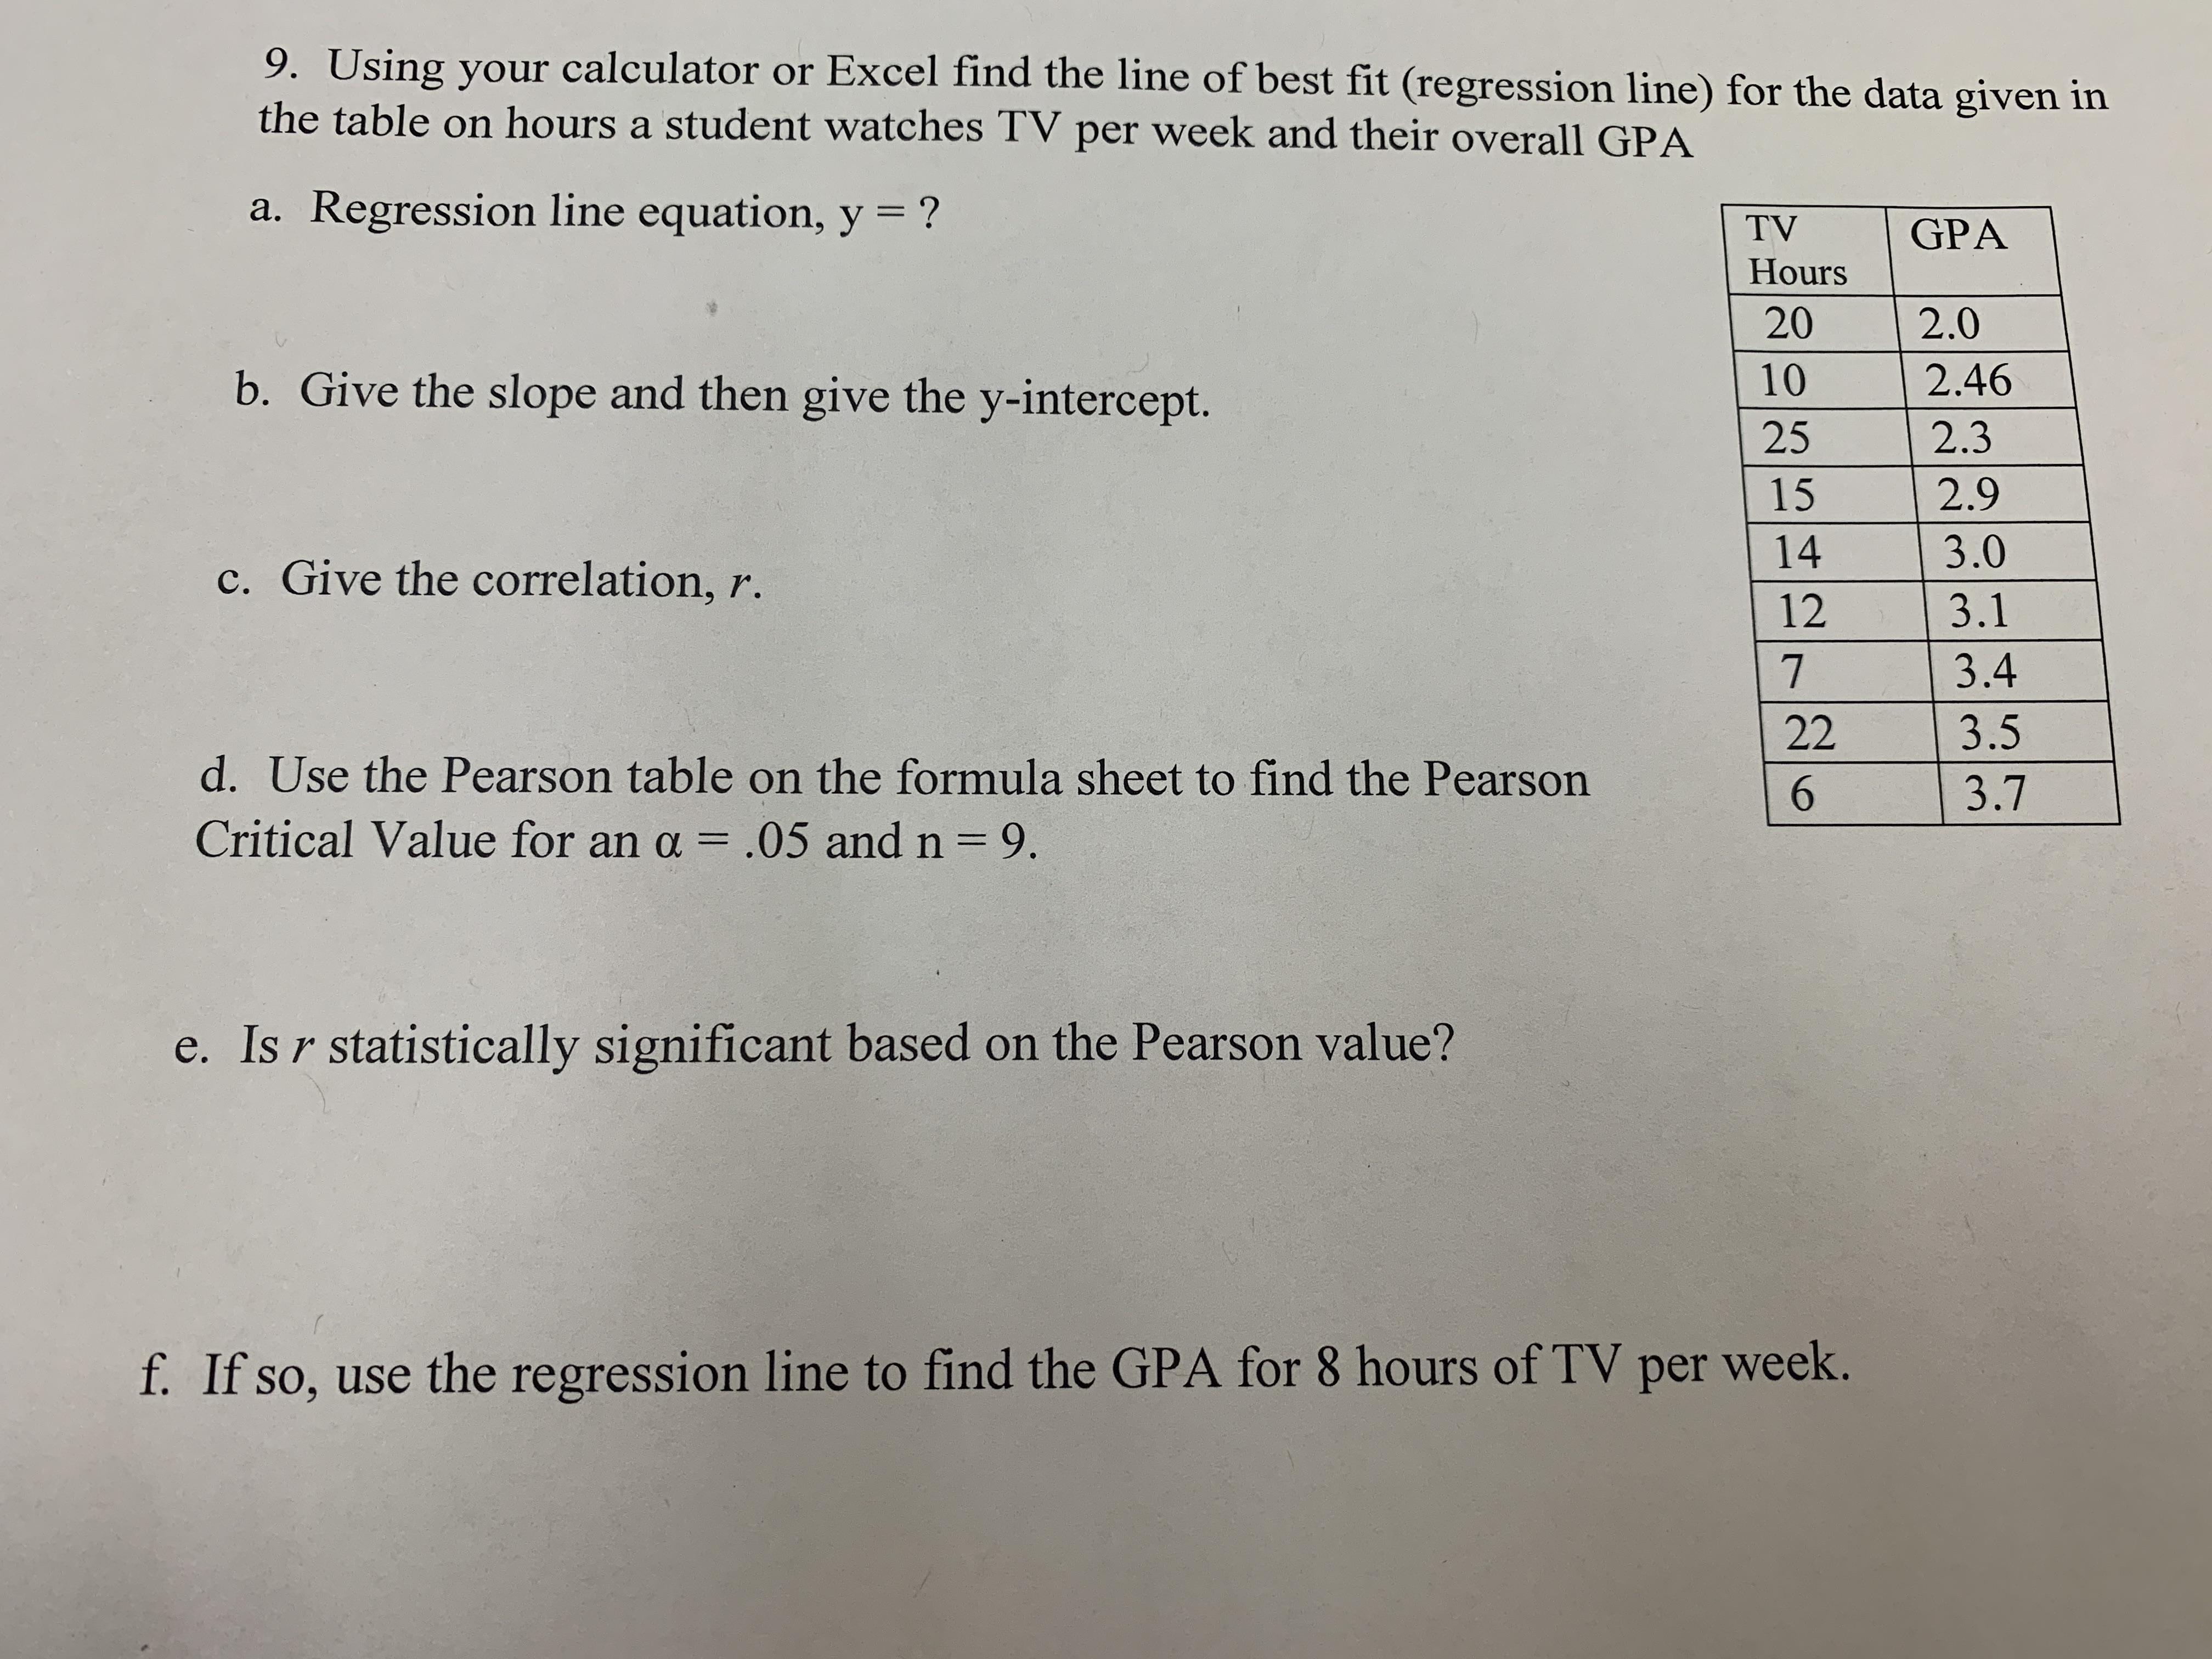 Answered 9 Using Your Calculator Or Excel Find